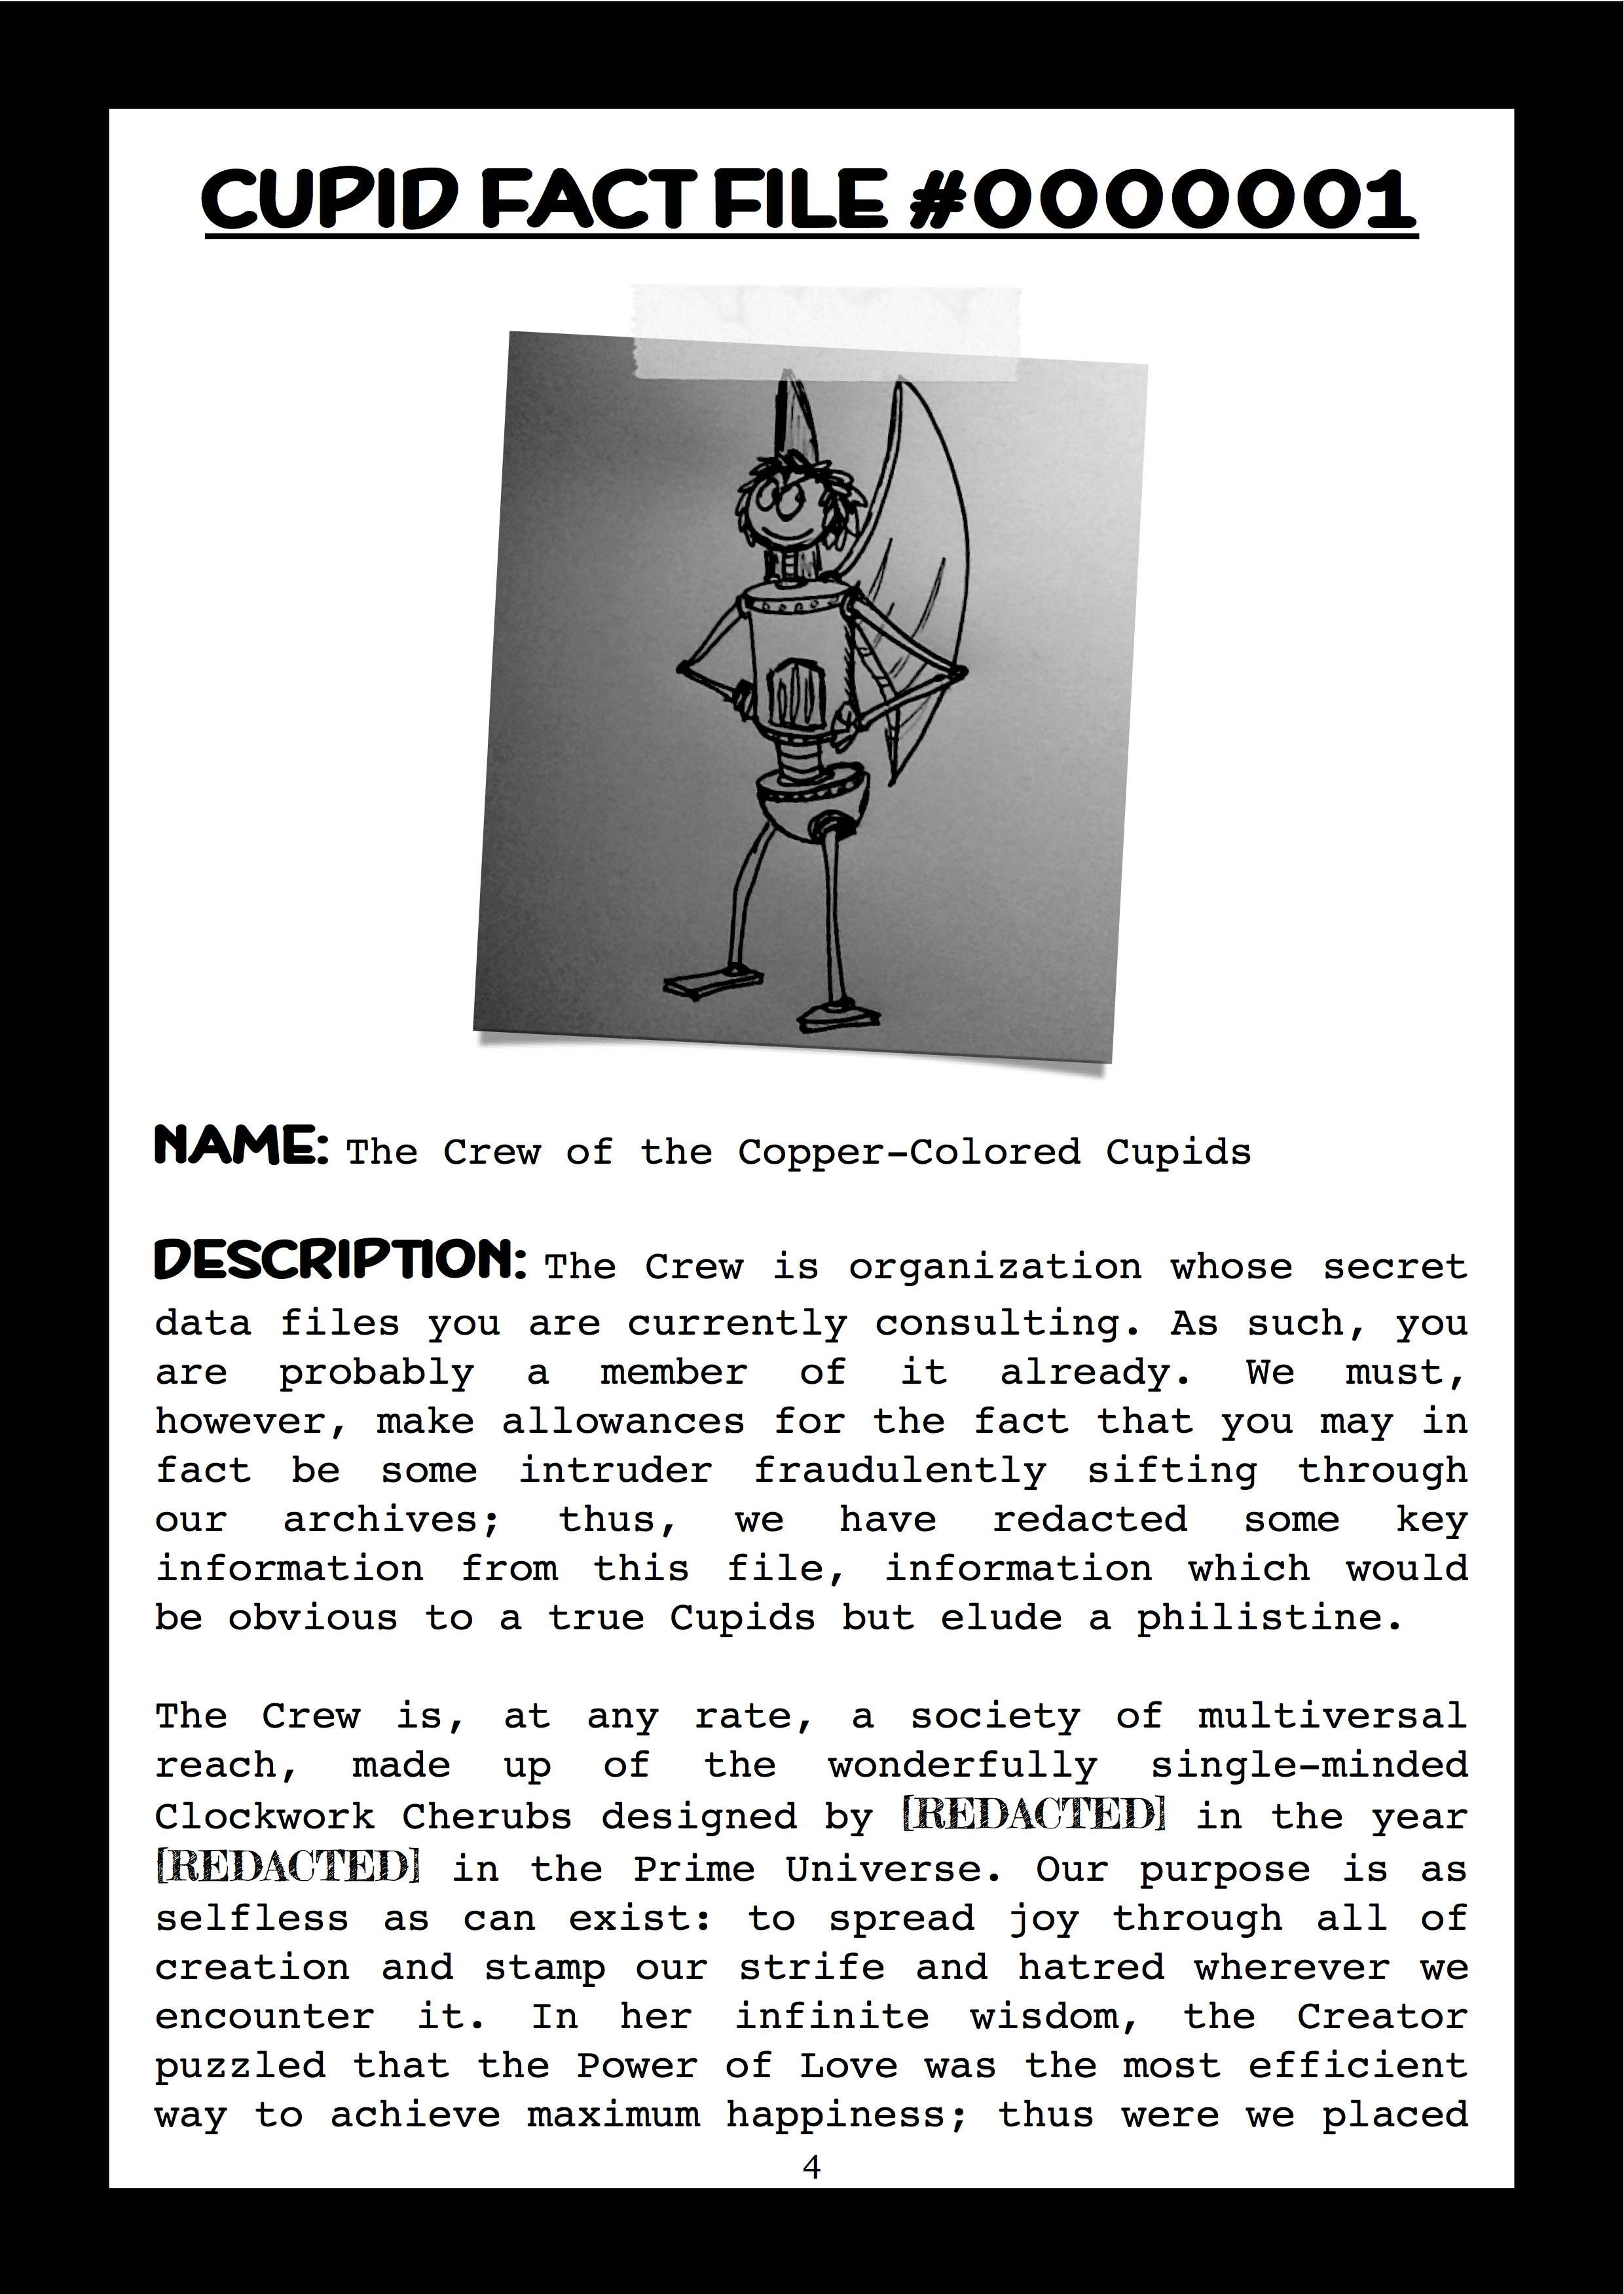 Cupid Fact File No. 001 — The Crew of the Copper-Colored Cupids